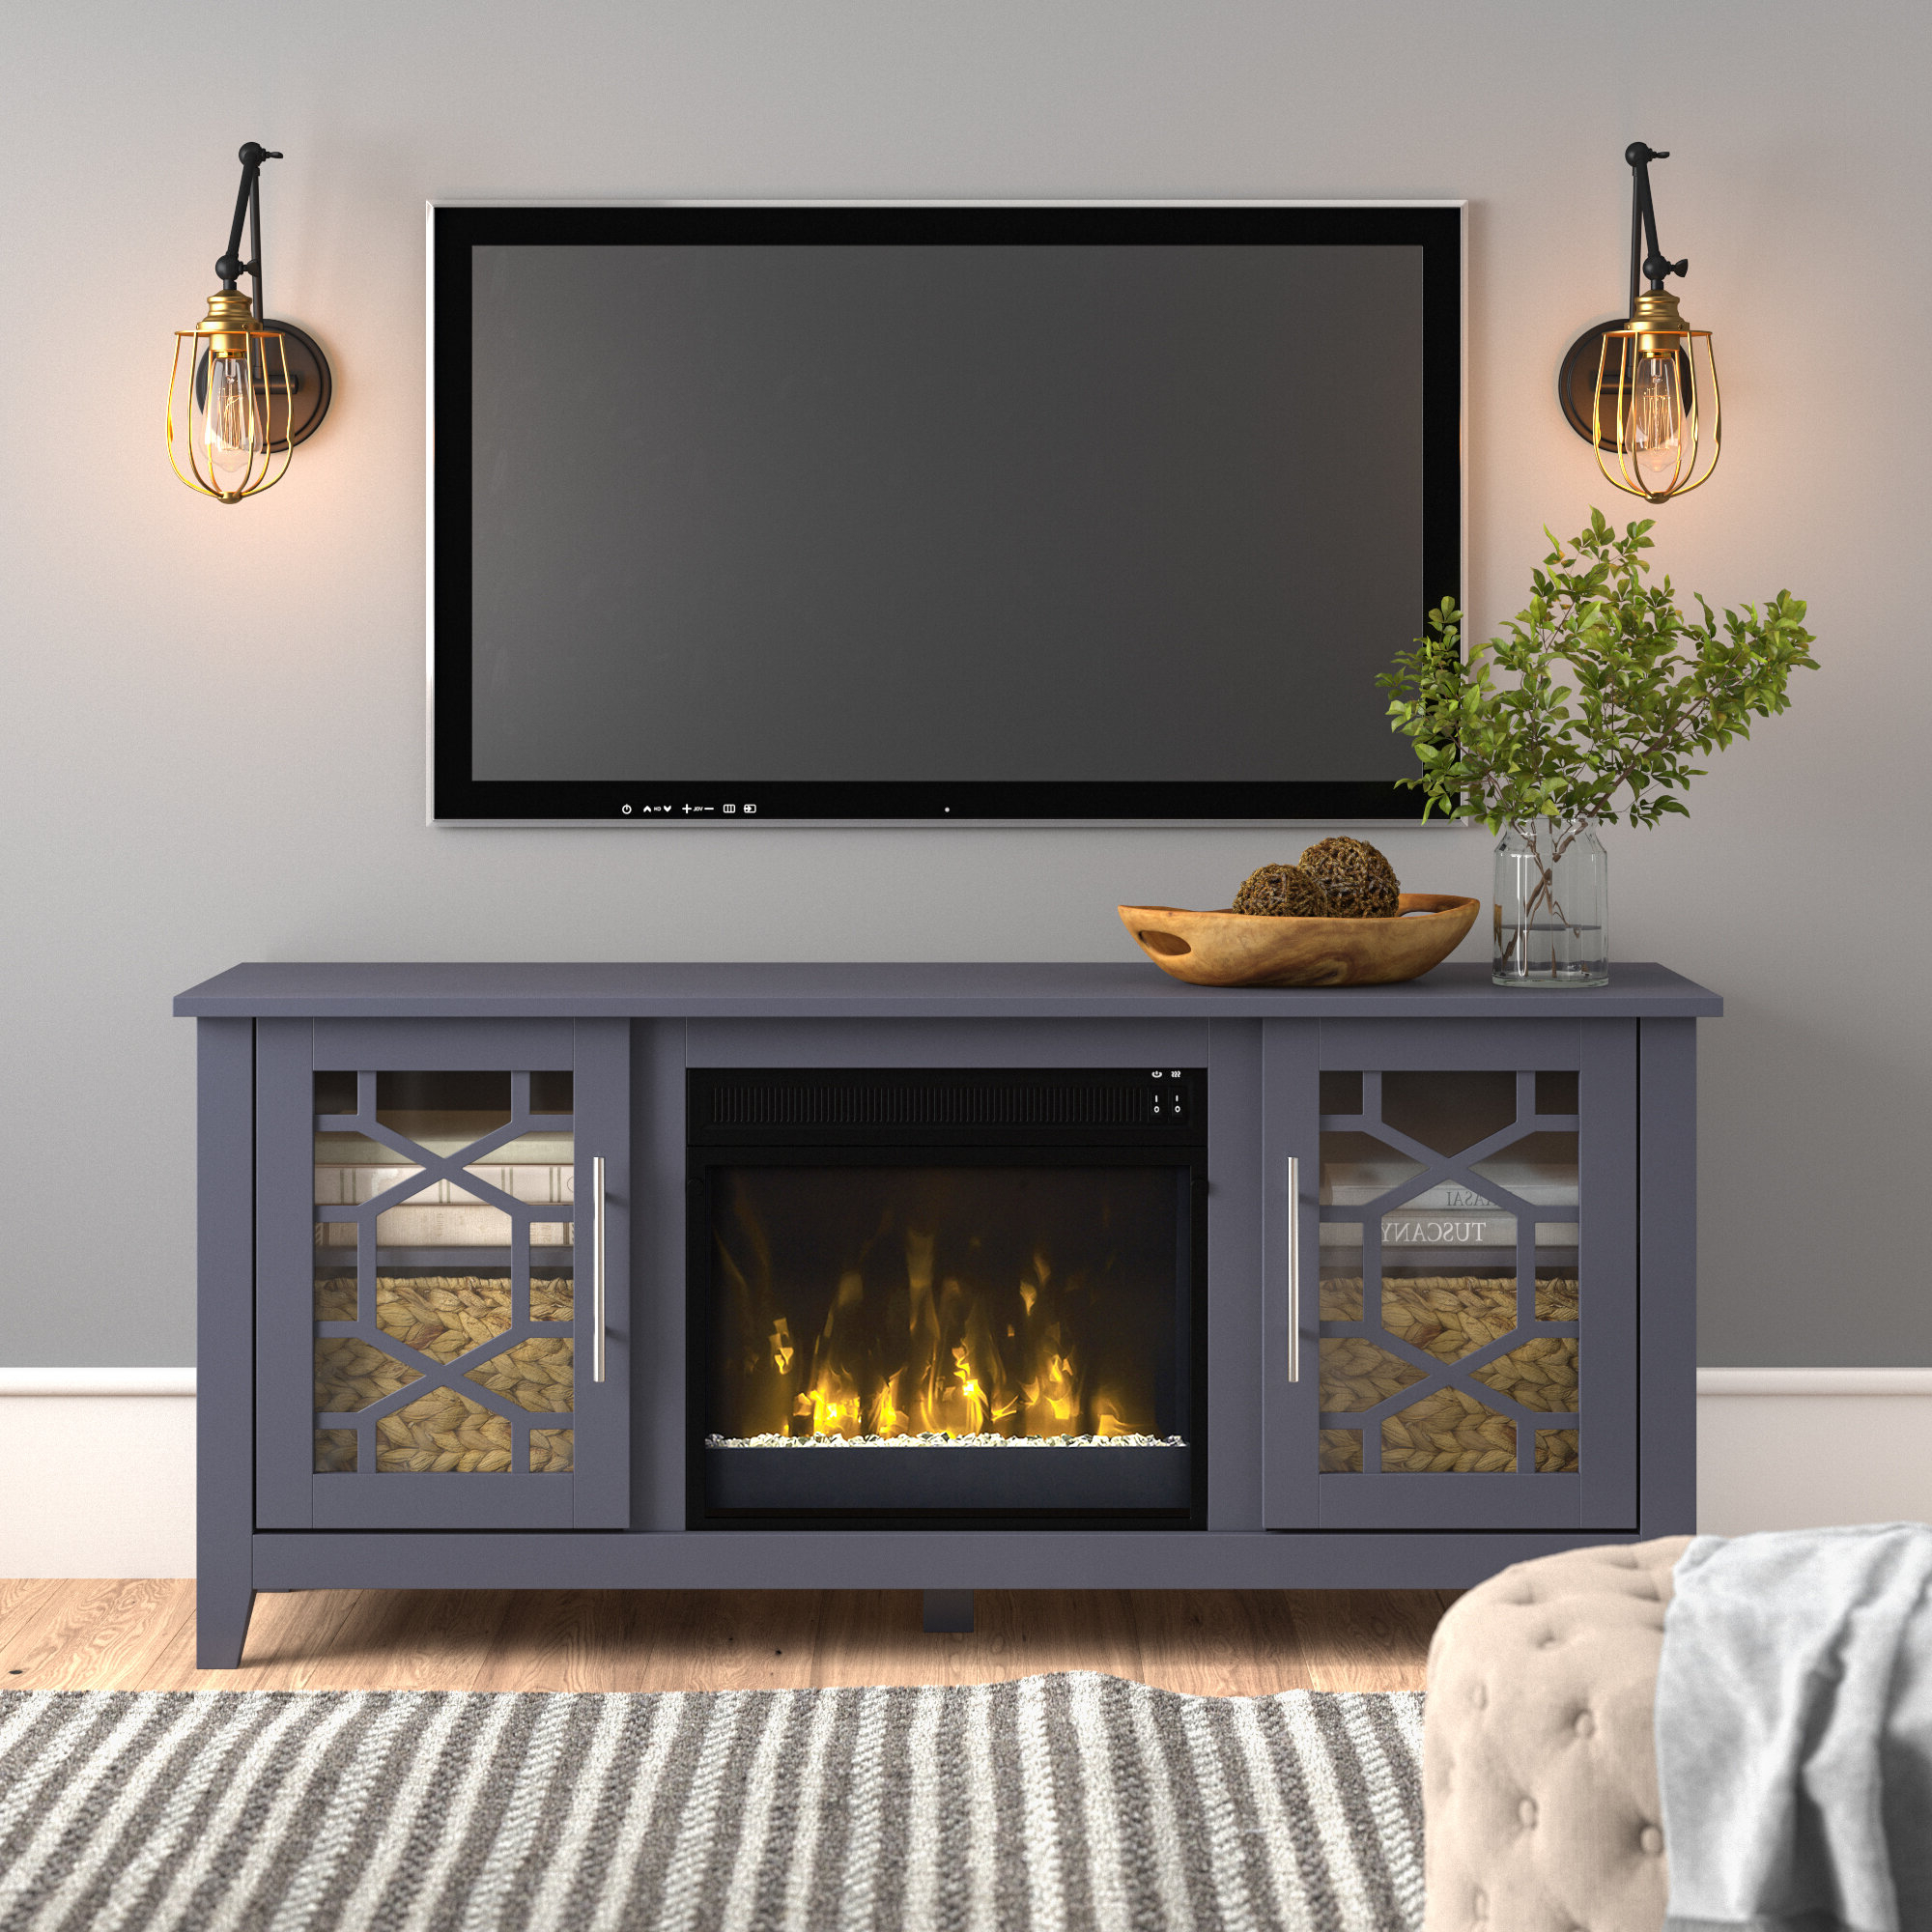 Farmhouse & Rustic Tv Stands | Birch Lane Within Madison Park Rachel Grey Media Credenzas (View 3 of 20)